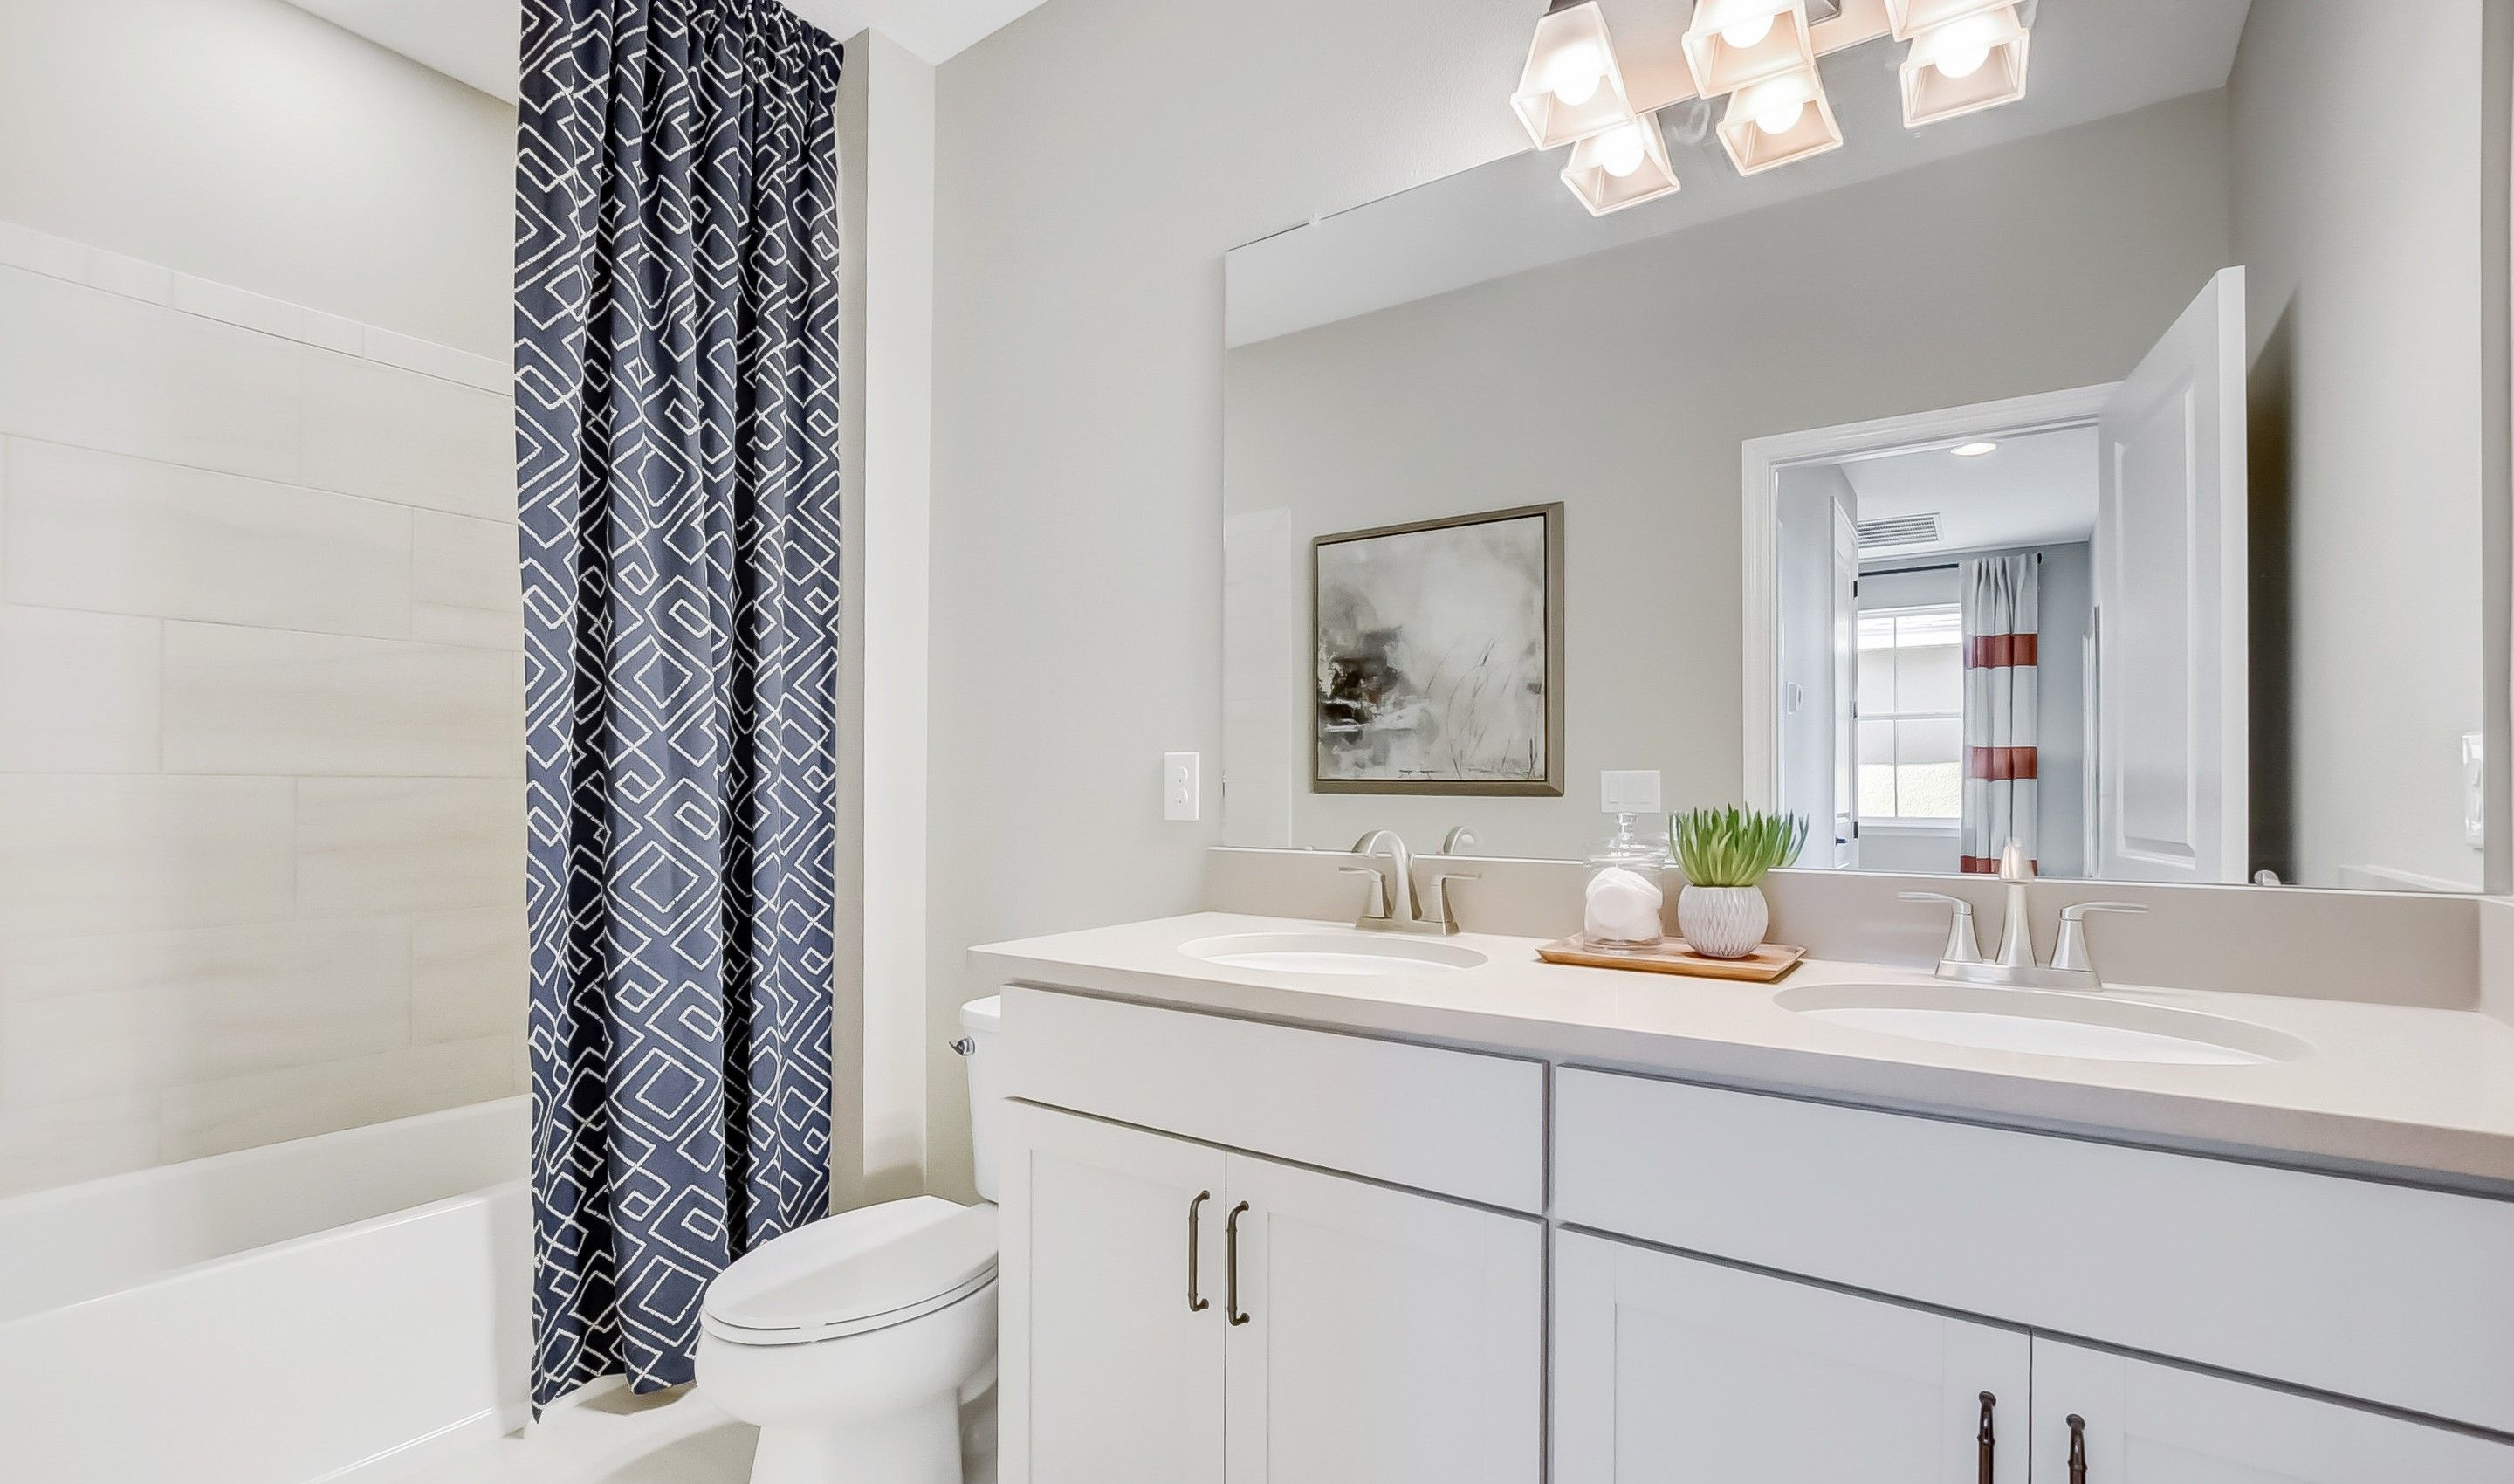 Bathroom featured in the Tessa By K. Hovnanian® Homes in Orlando, FL